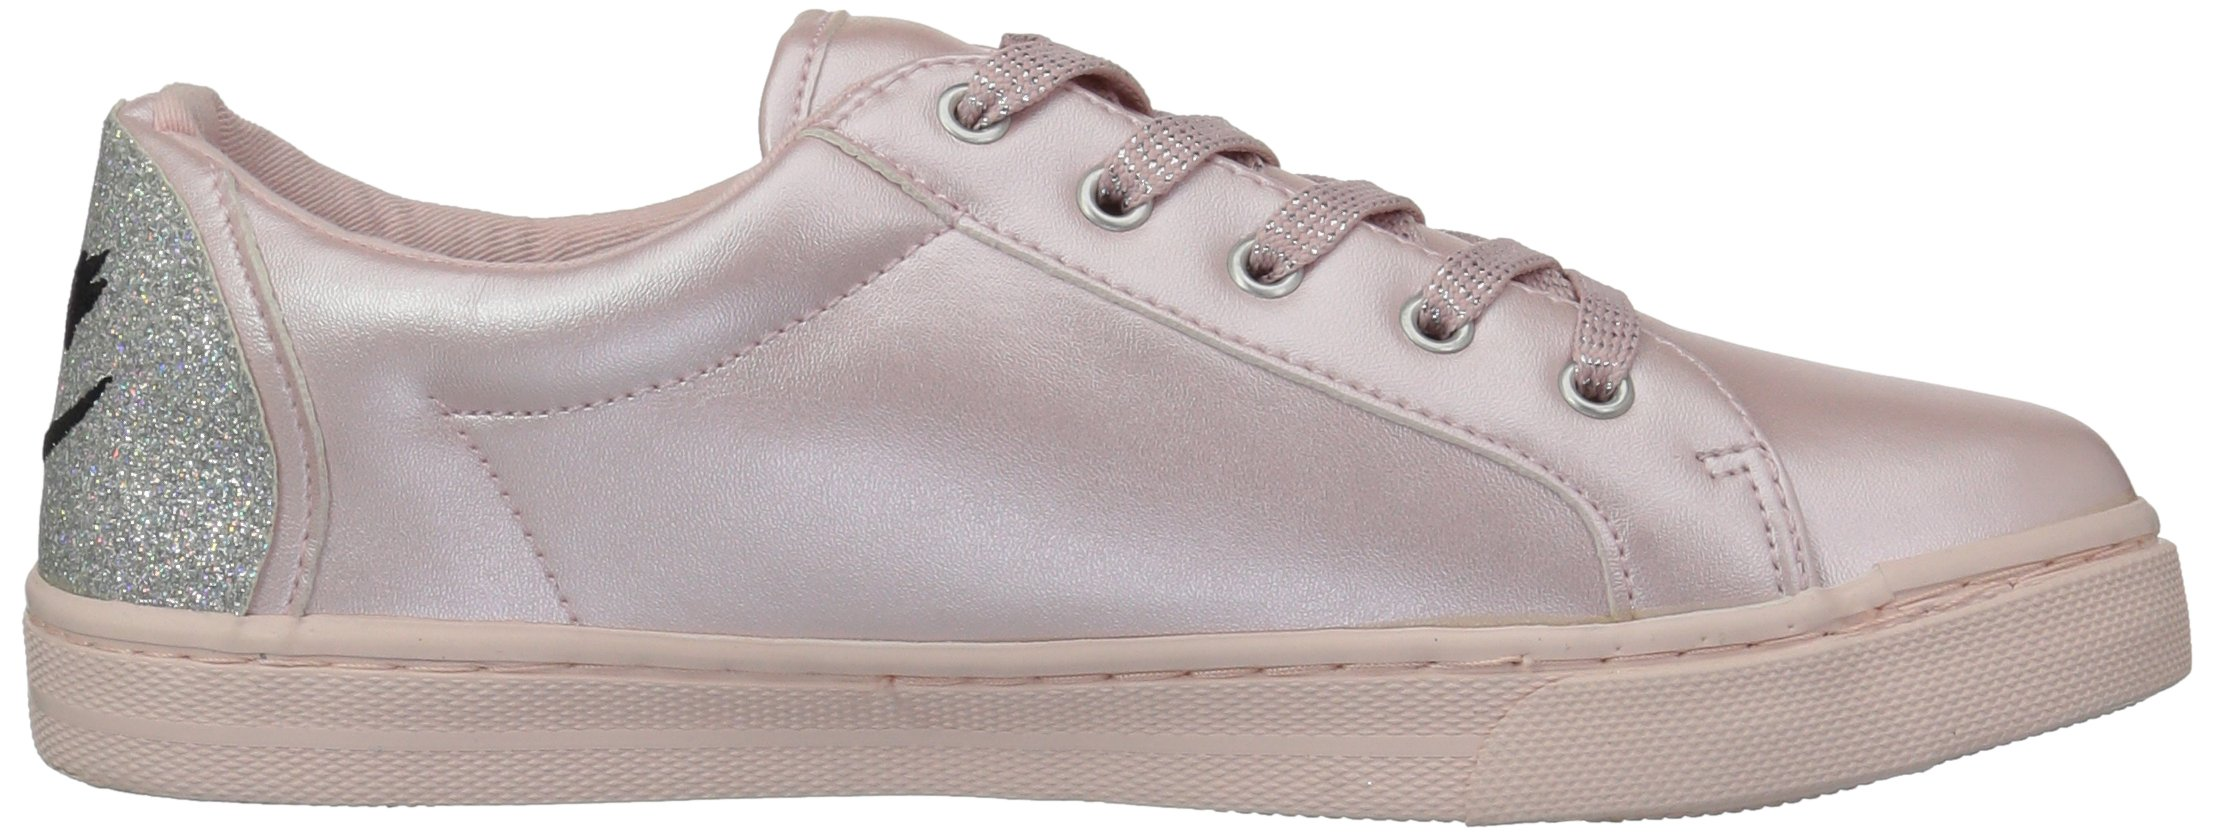 The Children's Place Girls' BG Emoji Sneaker, Pink, Youth 4 Medium US Big Kid by The Children's Place (Image #7)